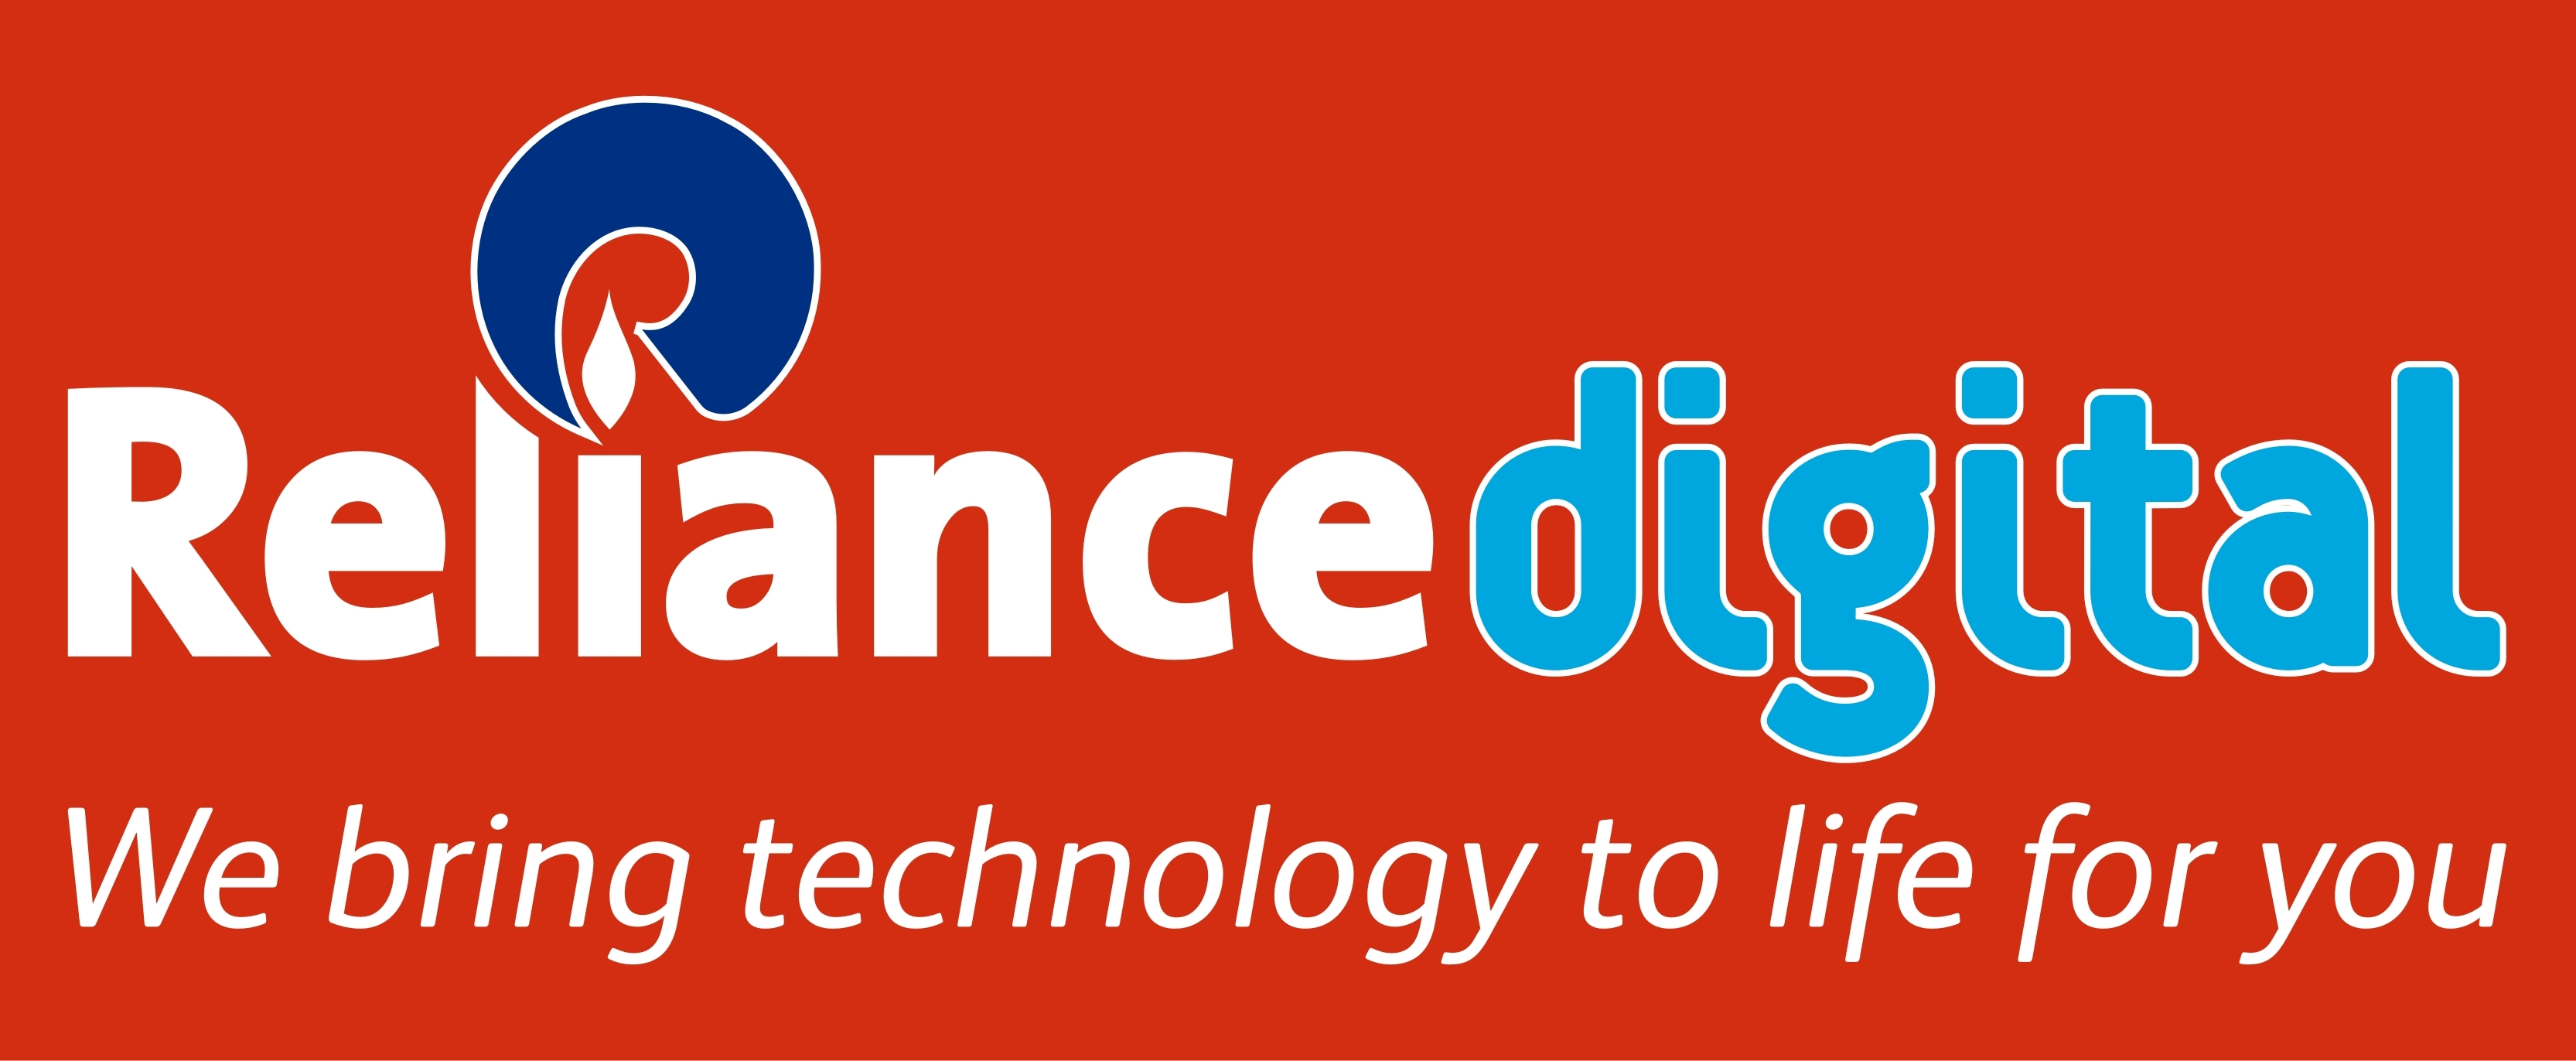 reliance dating site This website is best viewed on ie 11+, mozilla firefox, google chrome and safari.